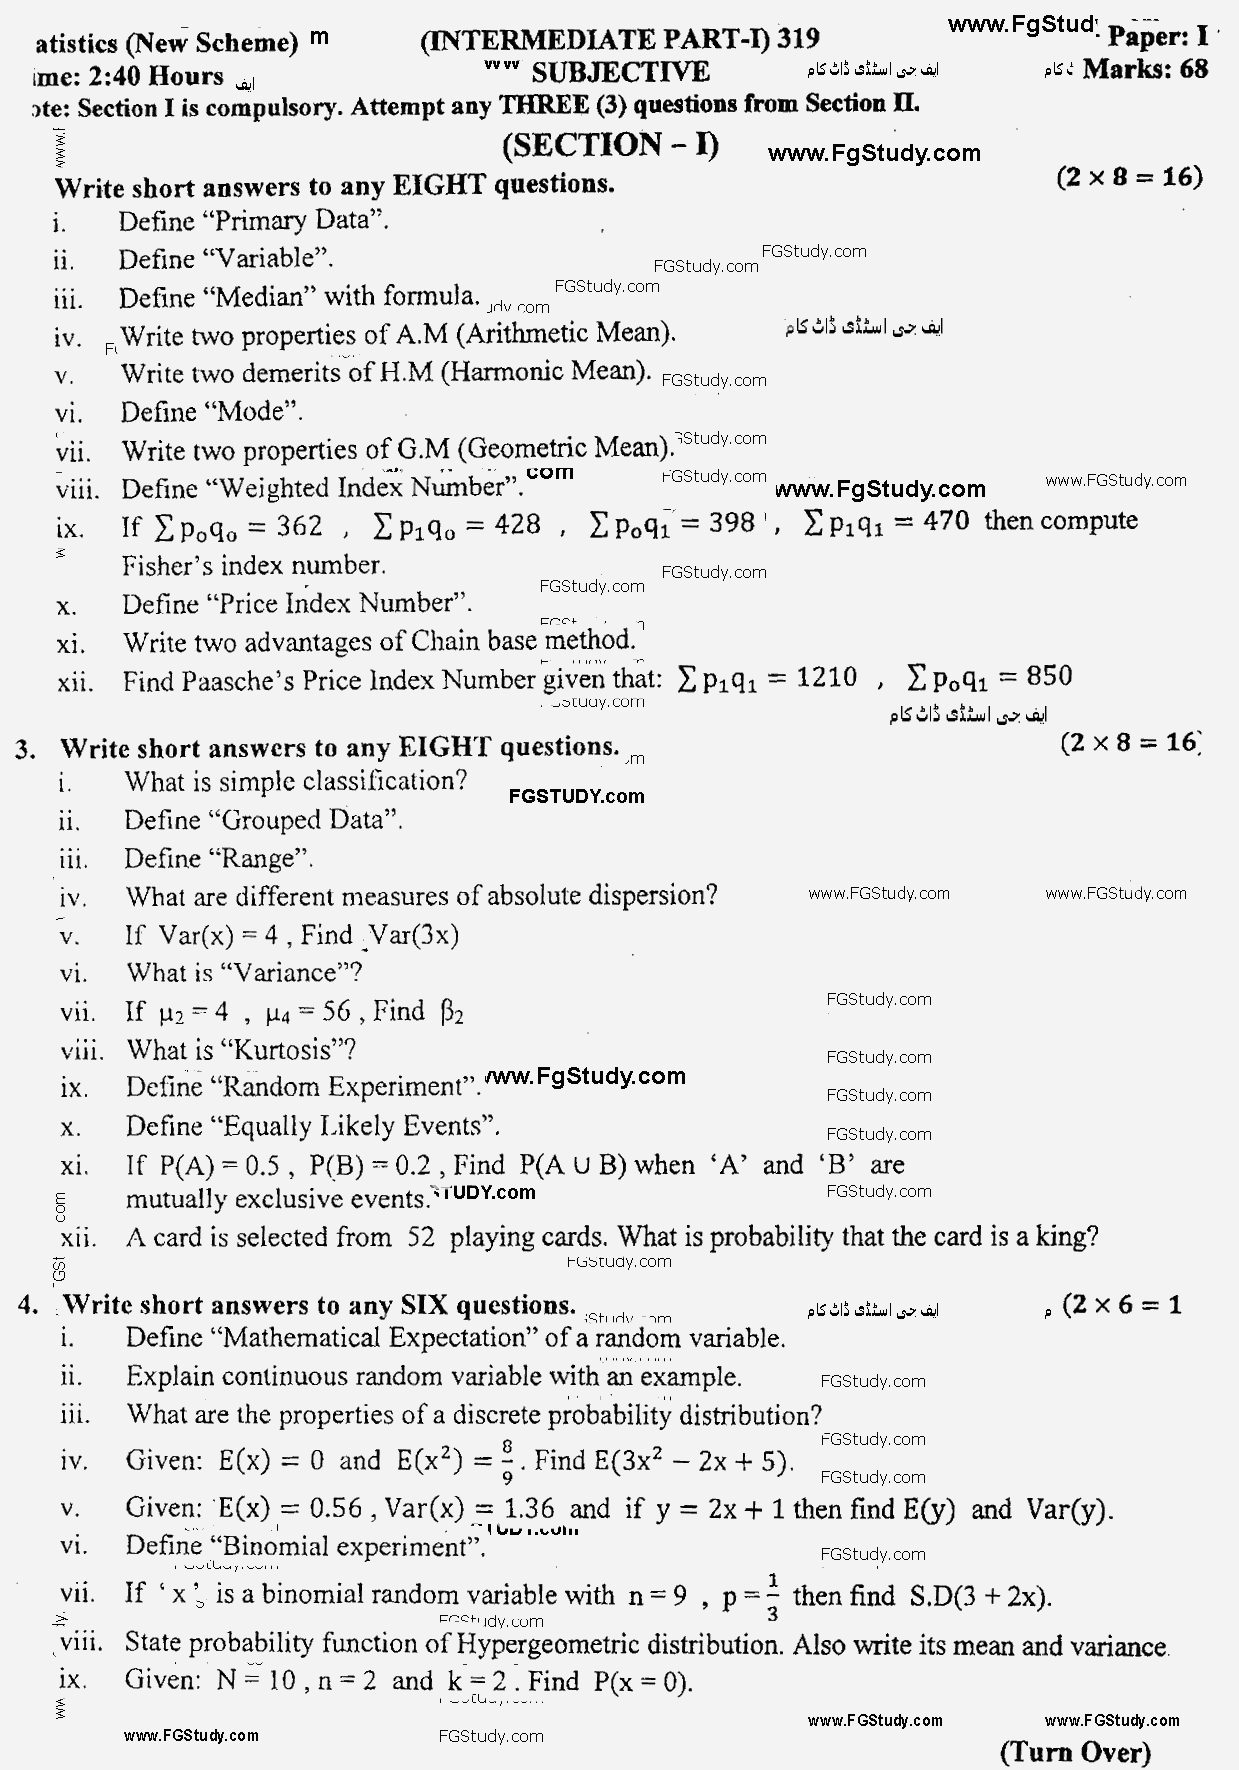 Statistics  Subjective 11th Class Past Papers 2019